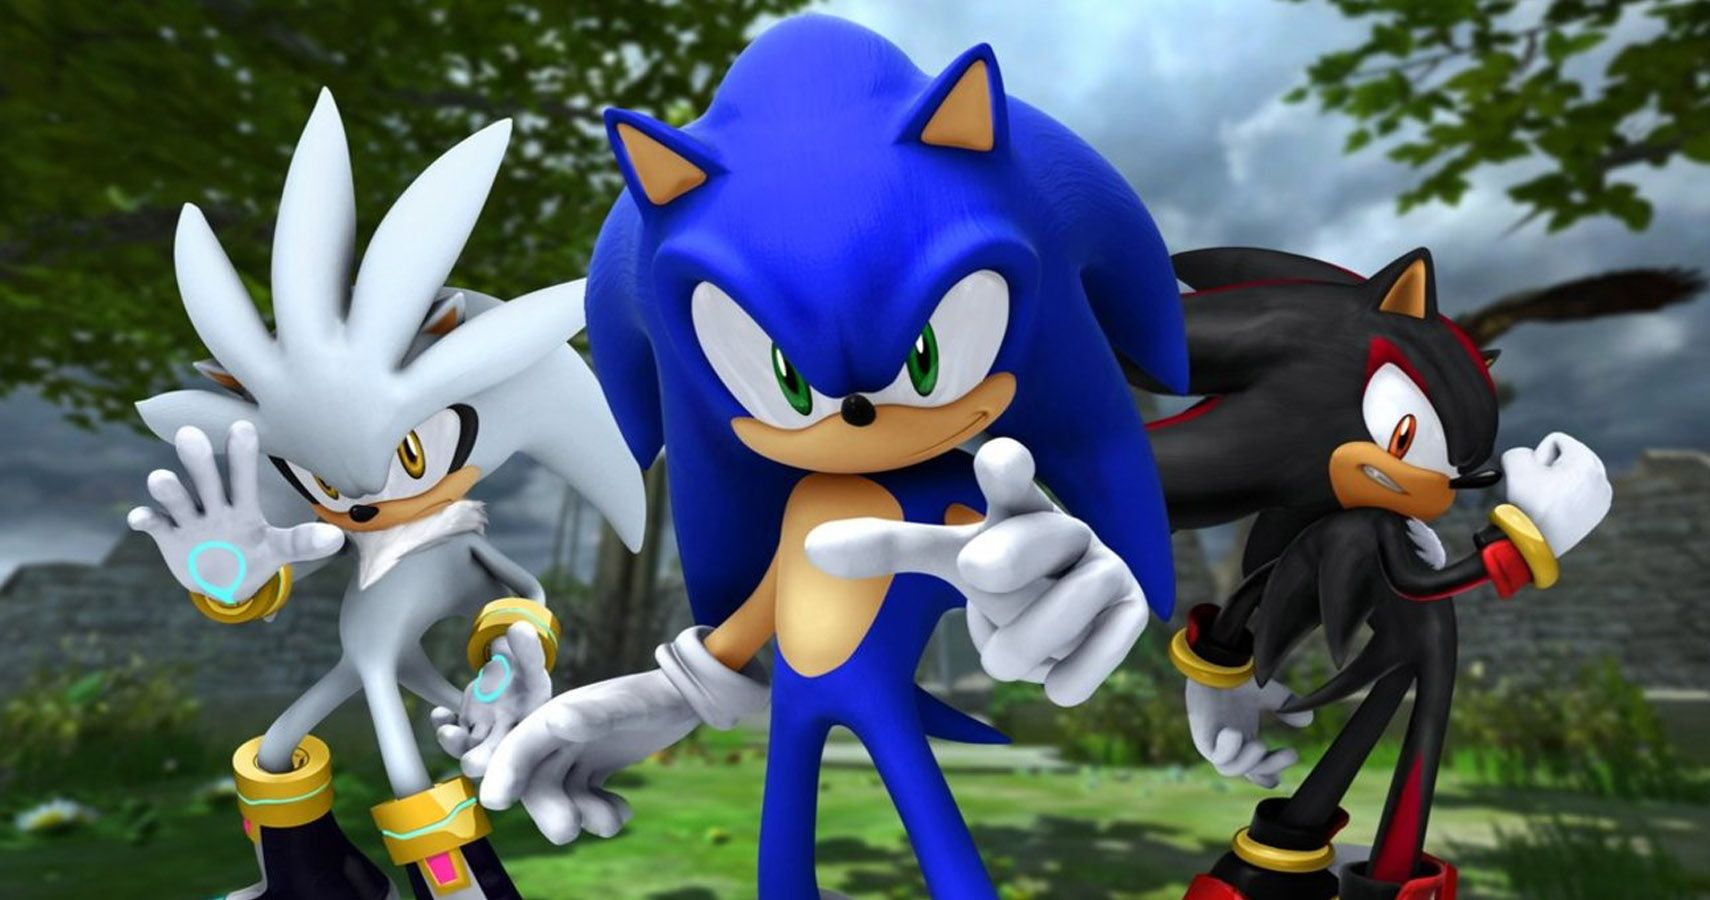 Sonic 06 10 Weirdest Things In The Story That Fans Want To Forget About